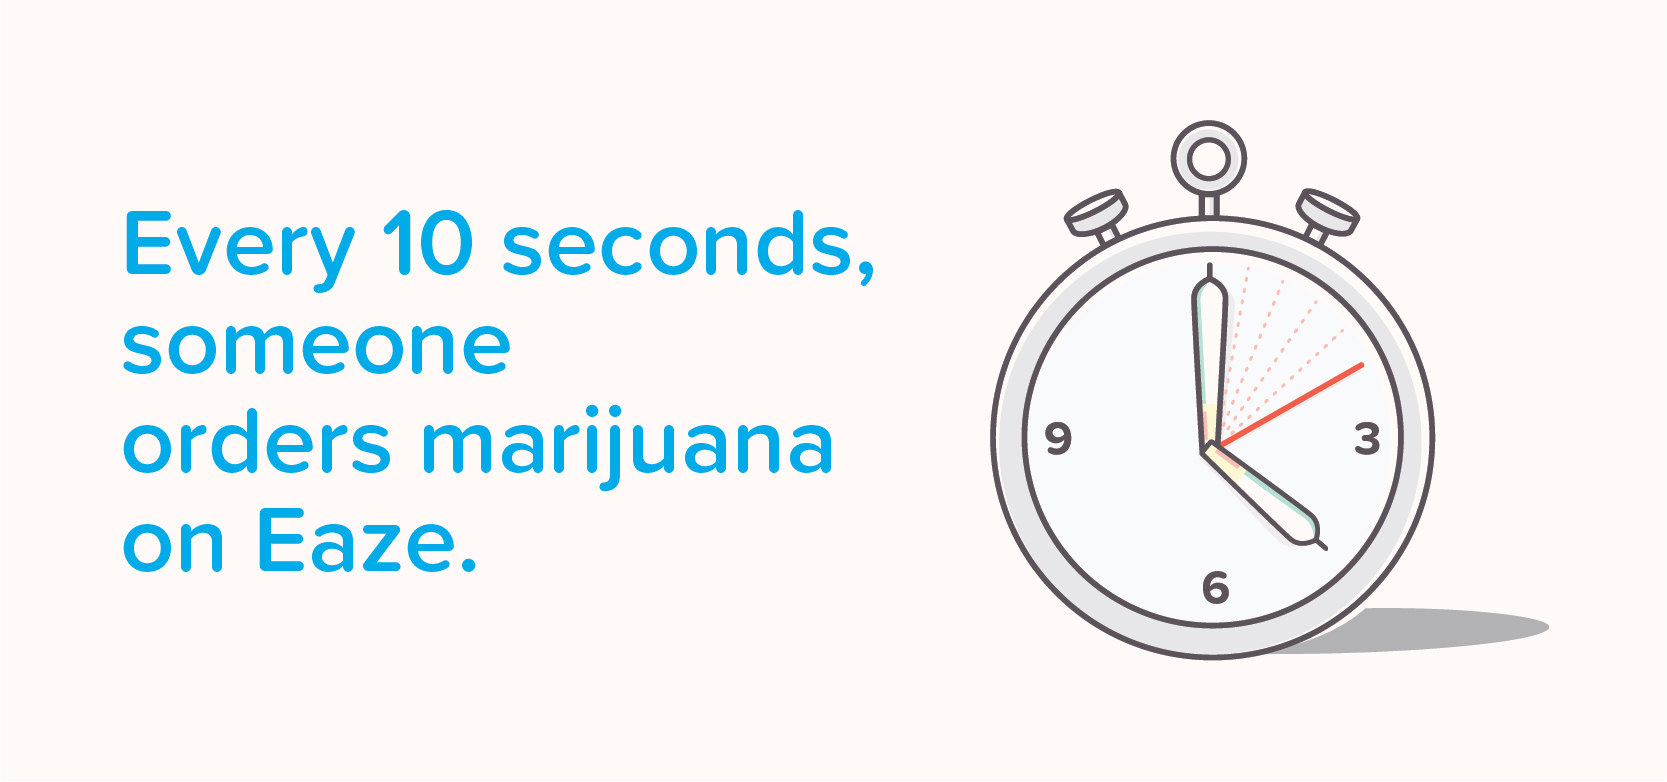 Infographic showing that someone makes a marijuana delivery order from Eaze every 10 seconds.